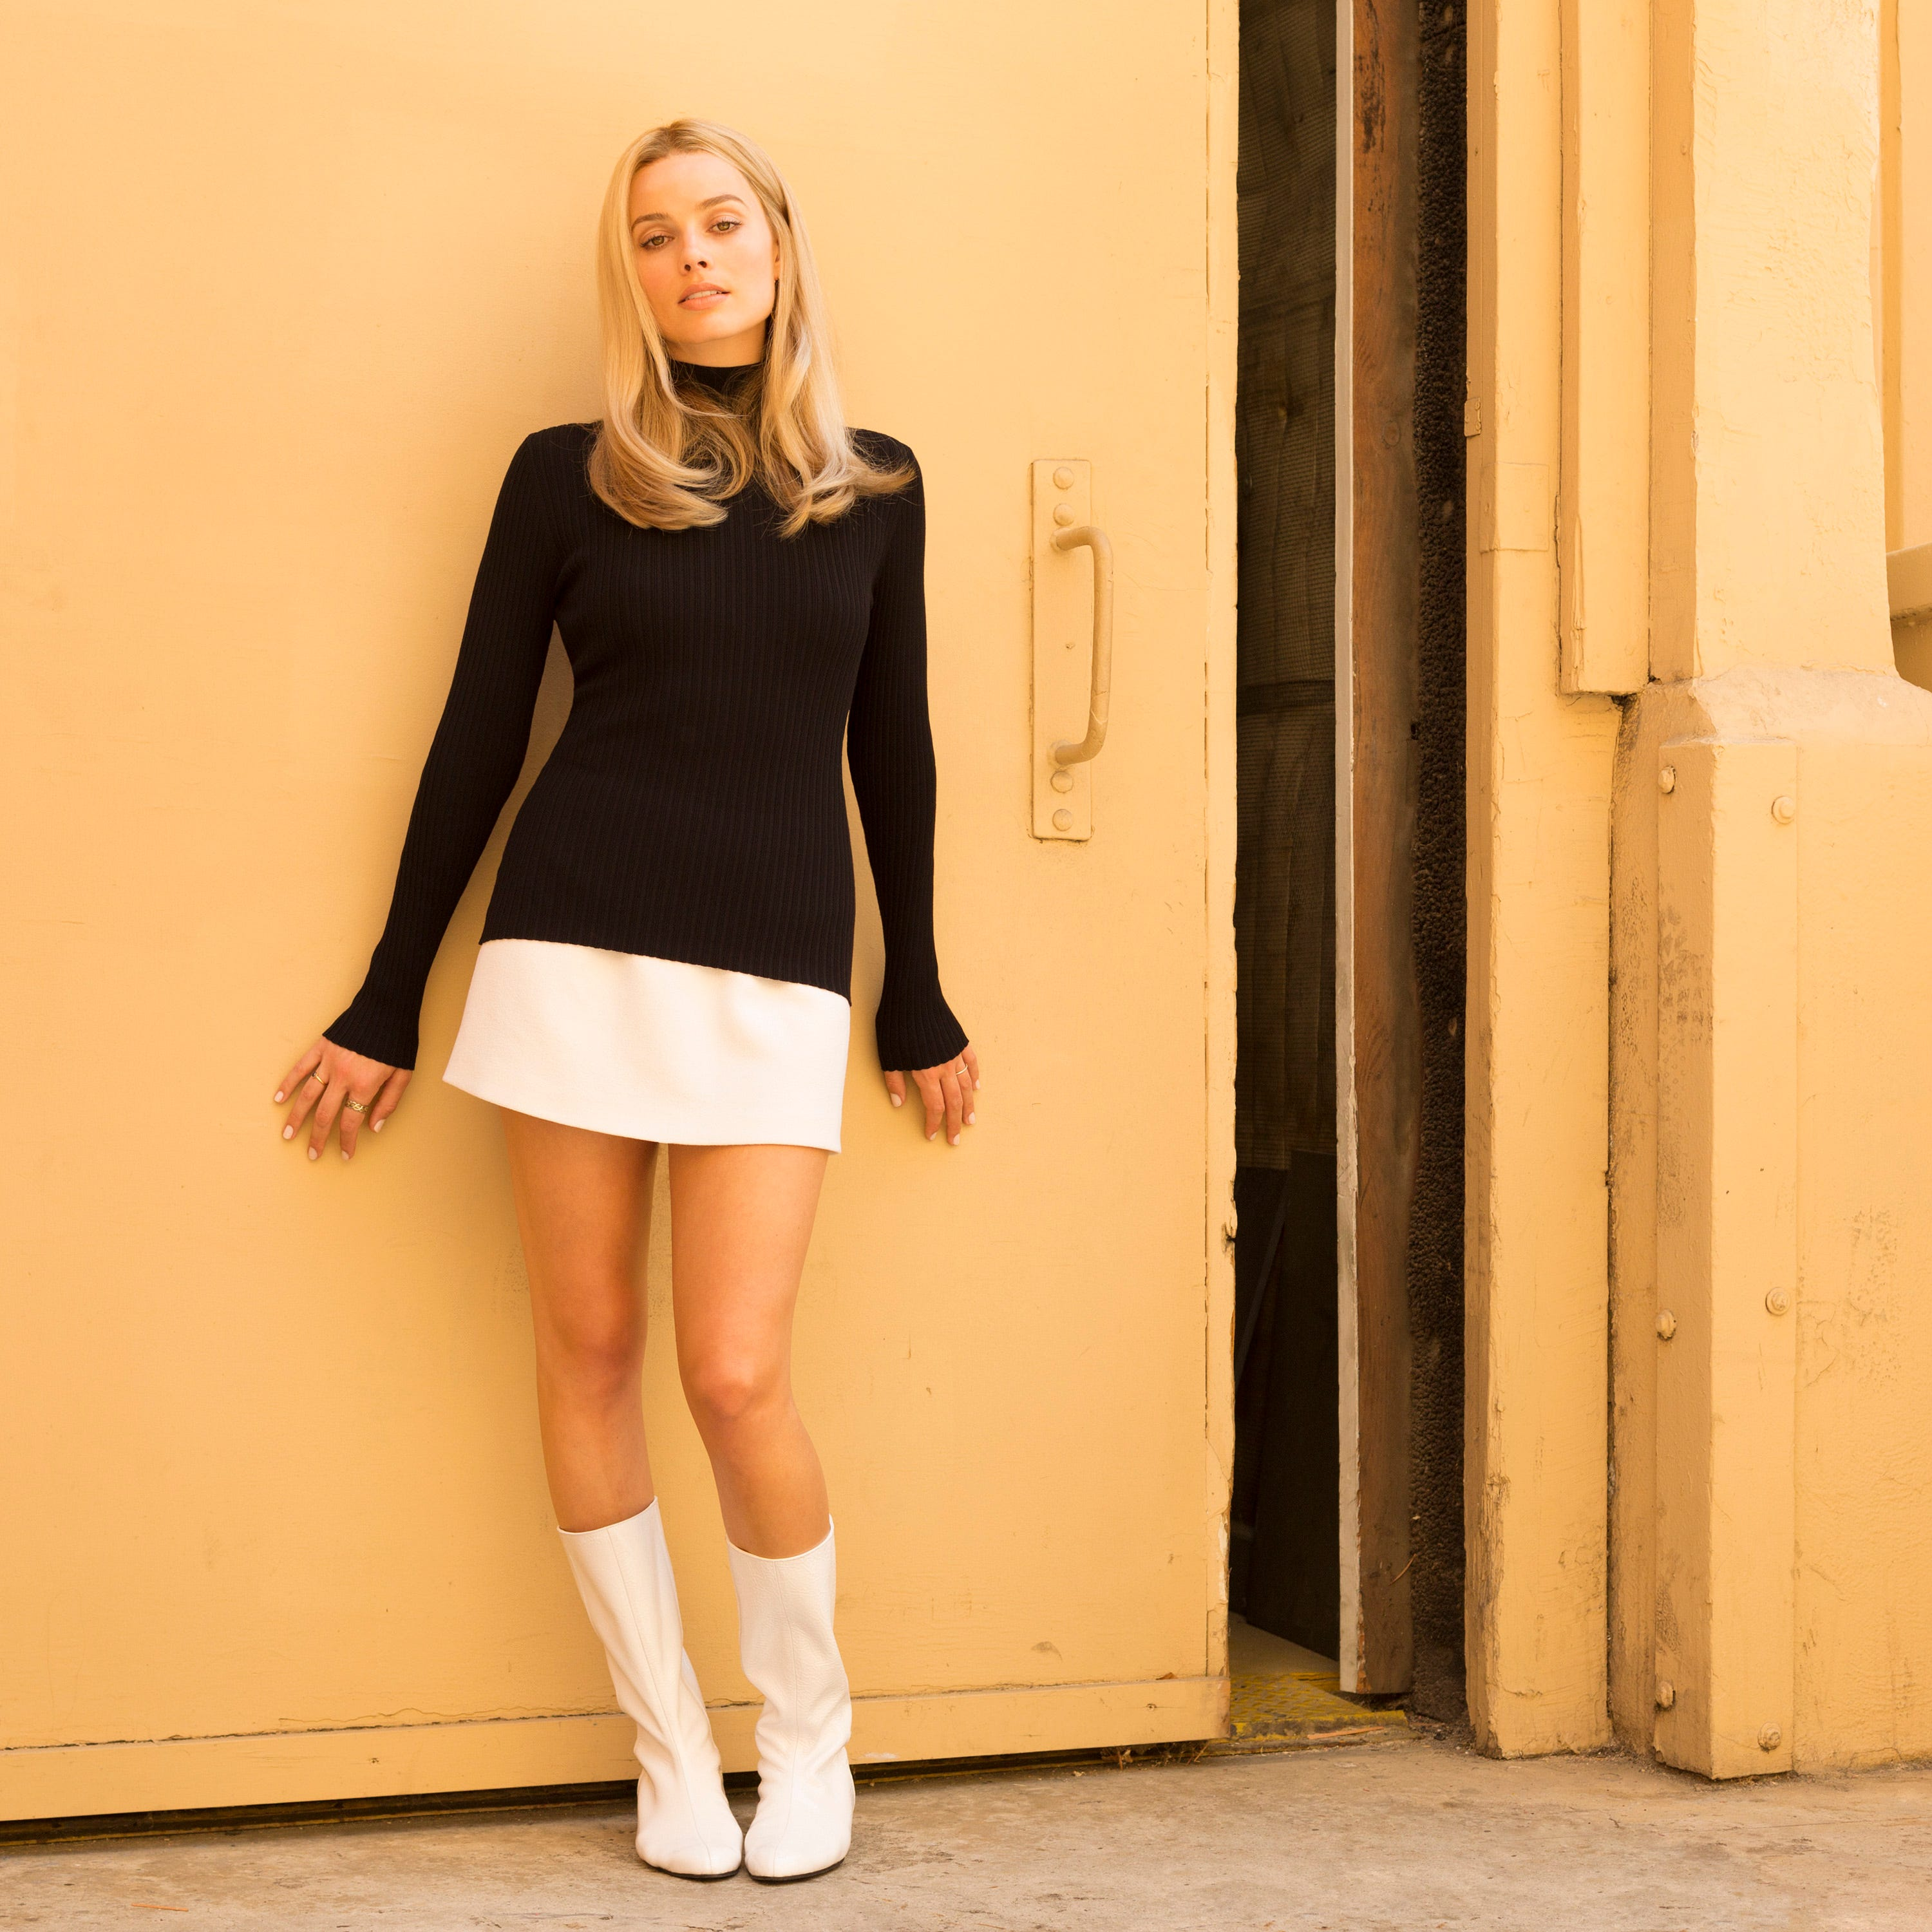 Margot Robbie's scary good Sharon Tate transformation for 'Once Upon a Time in Hollywood'